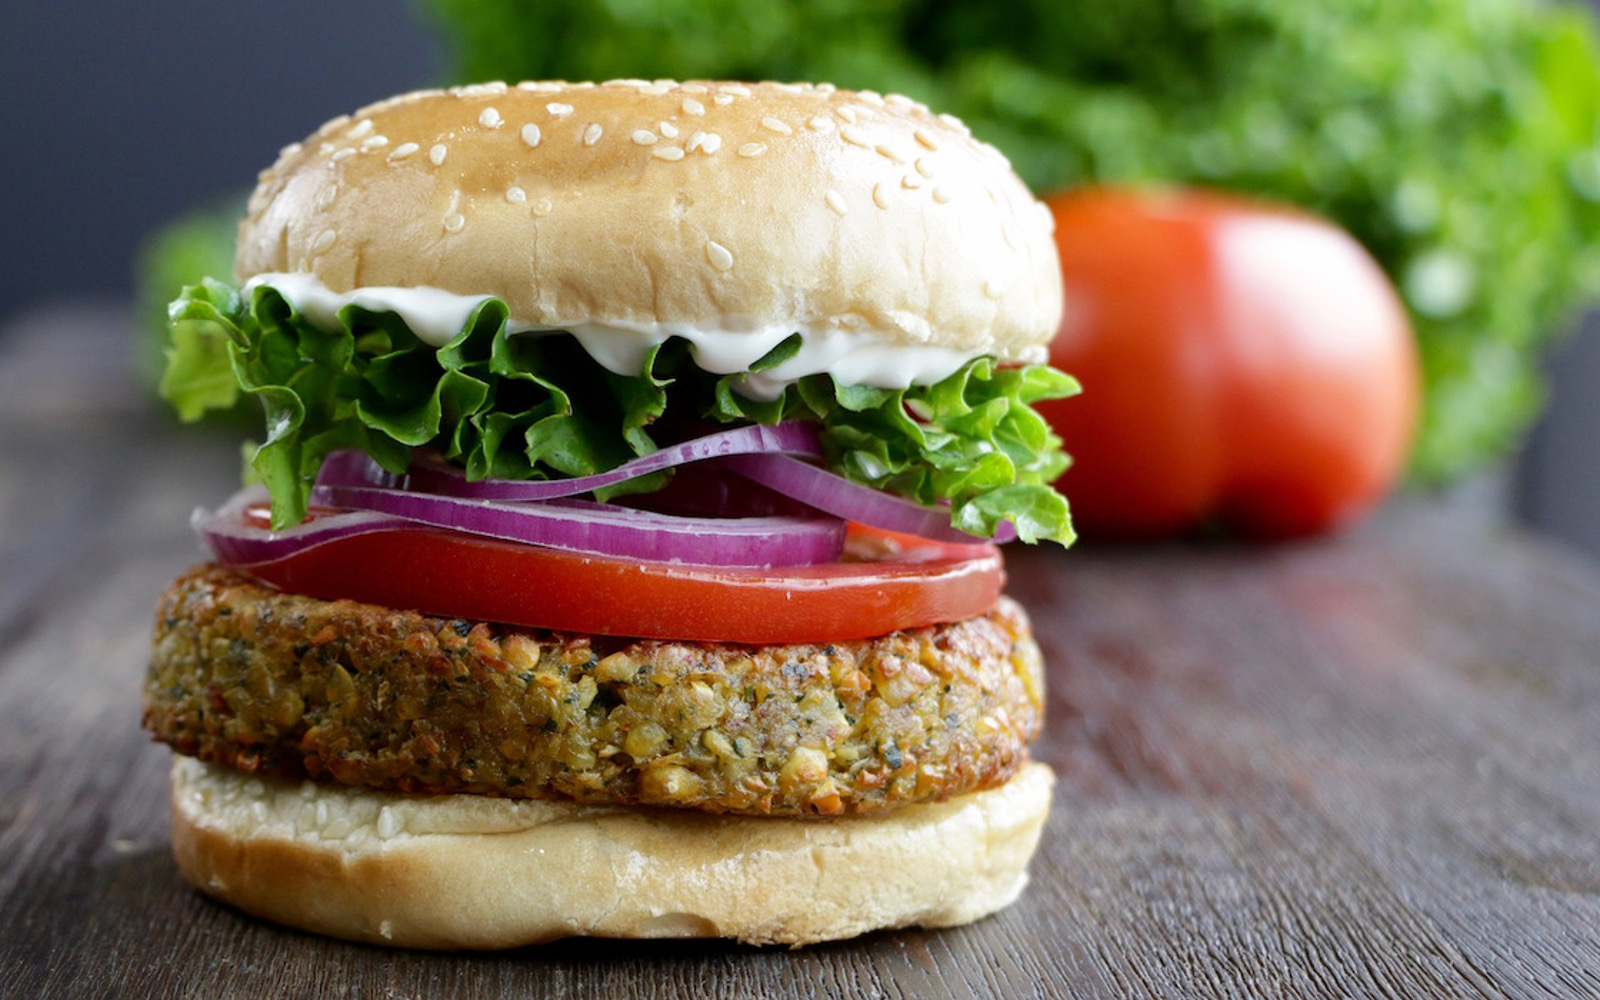 15 Homemade Plant Based Burgers You Must Make One Green Planet